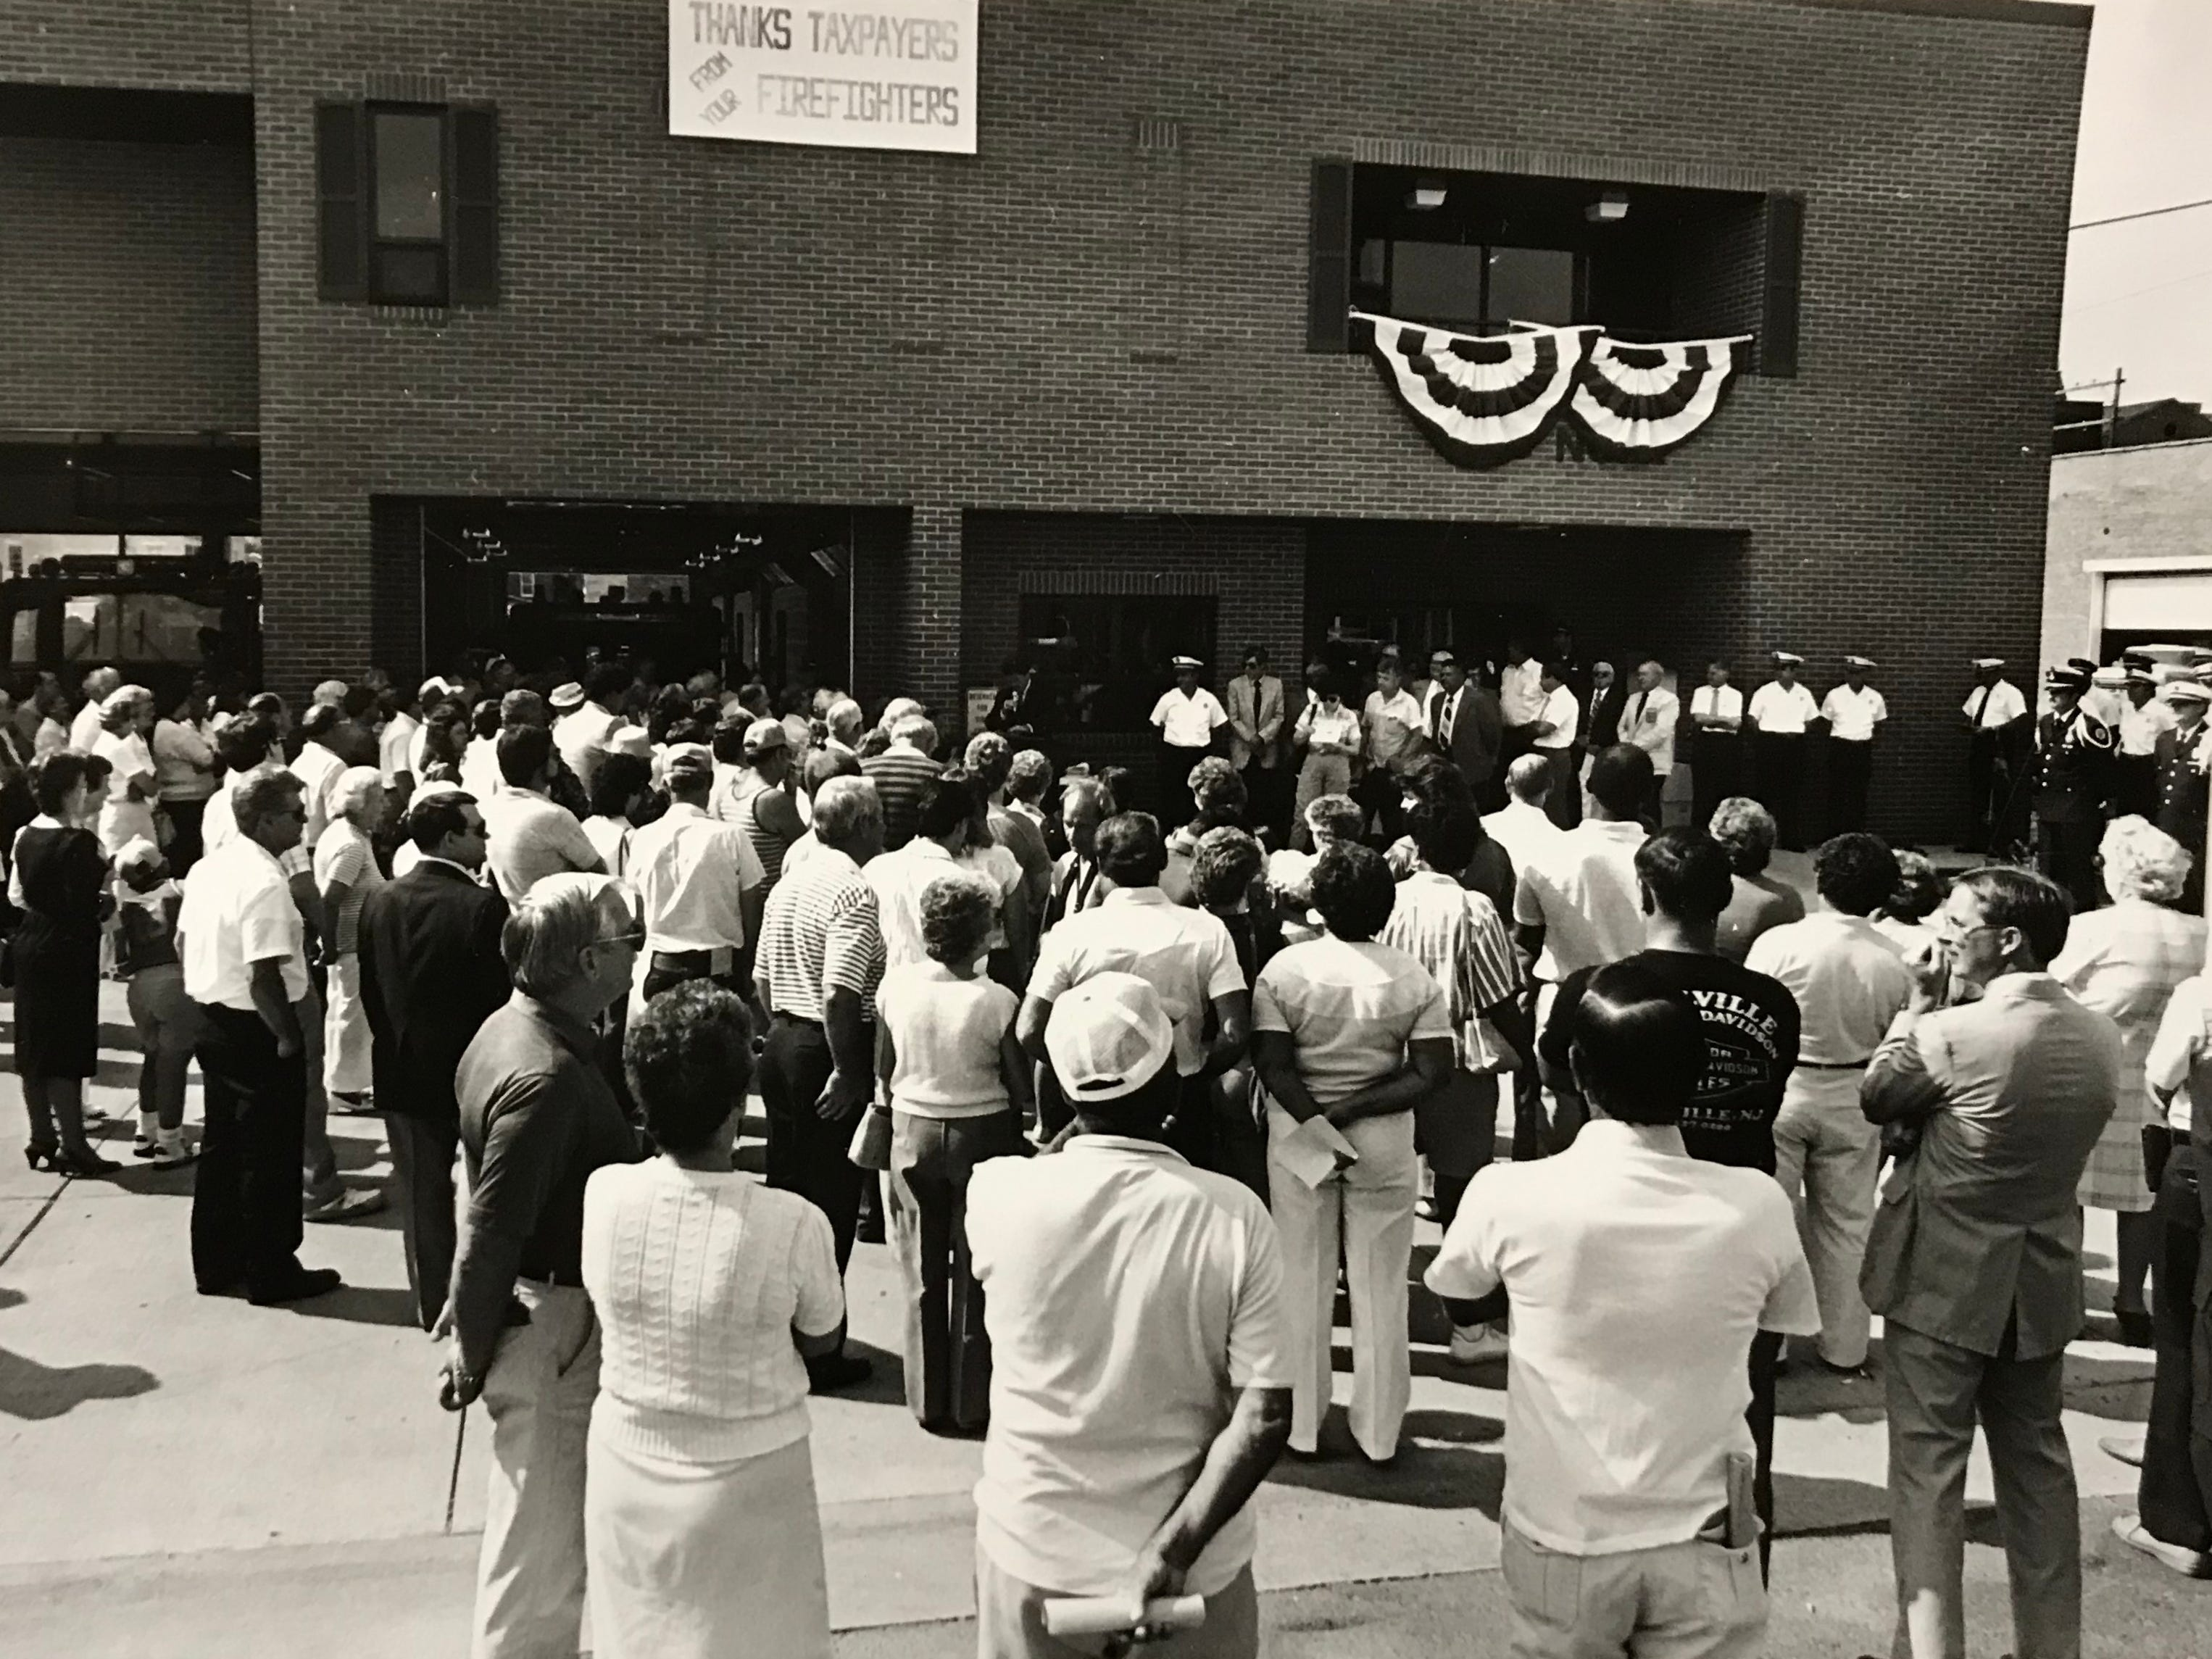 In August 1986, a celebration was conducted for the opening of the new Station 1 on Water Street. The $1.4 million project replaced the East Second Street station.